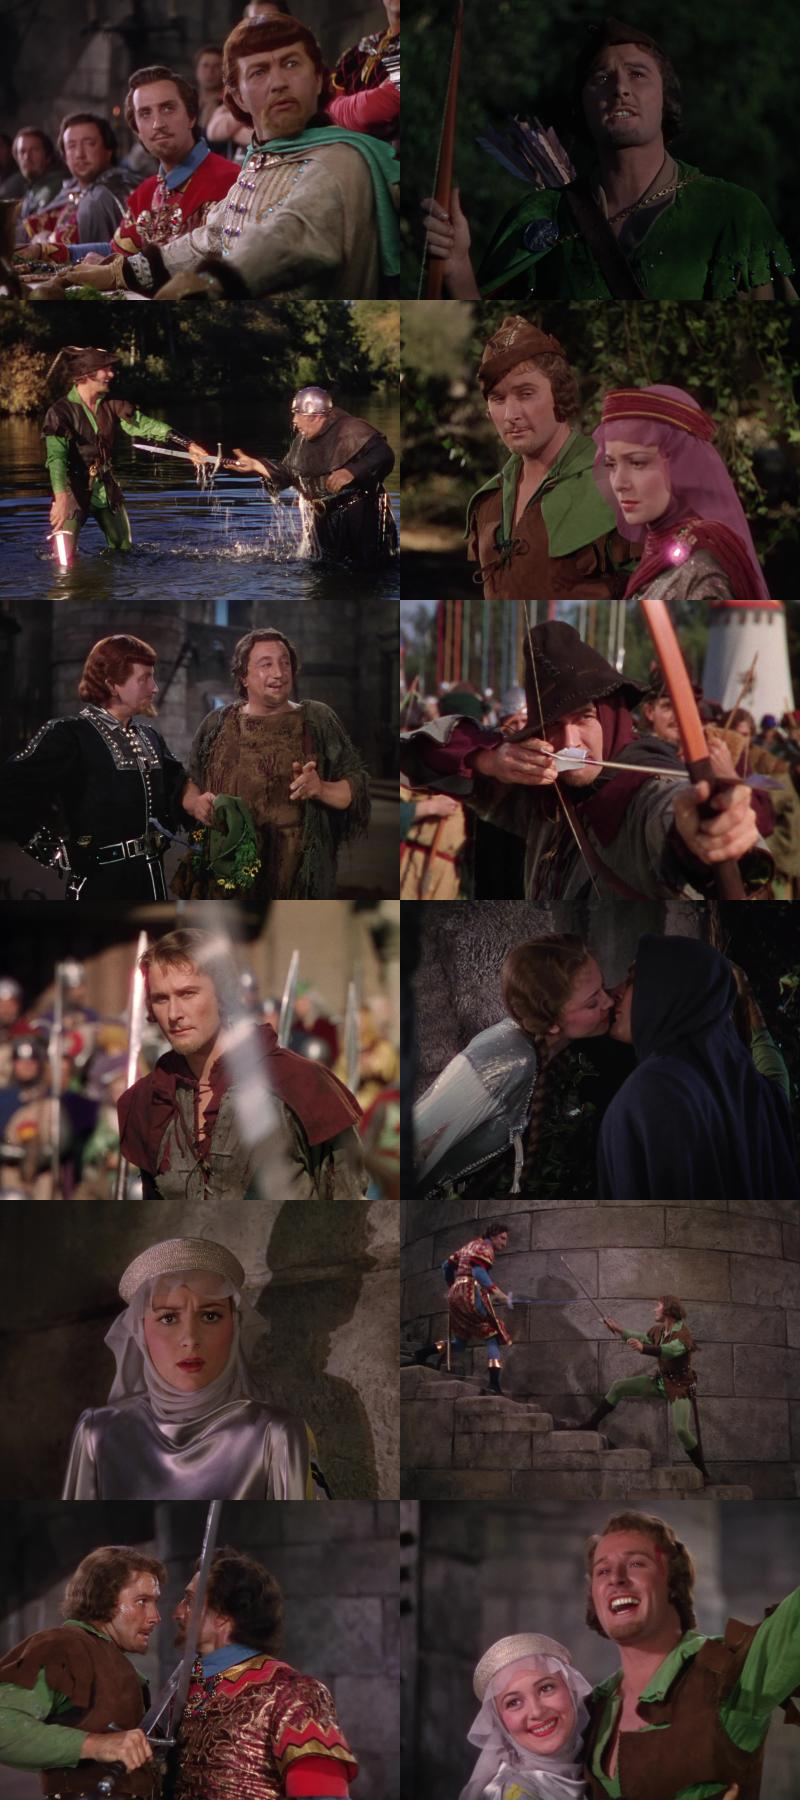 http://watershade.net/public/adventures-of-robin-hood.jpg